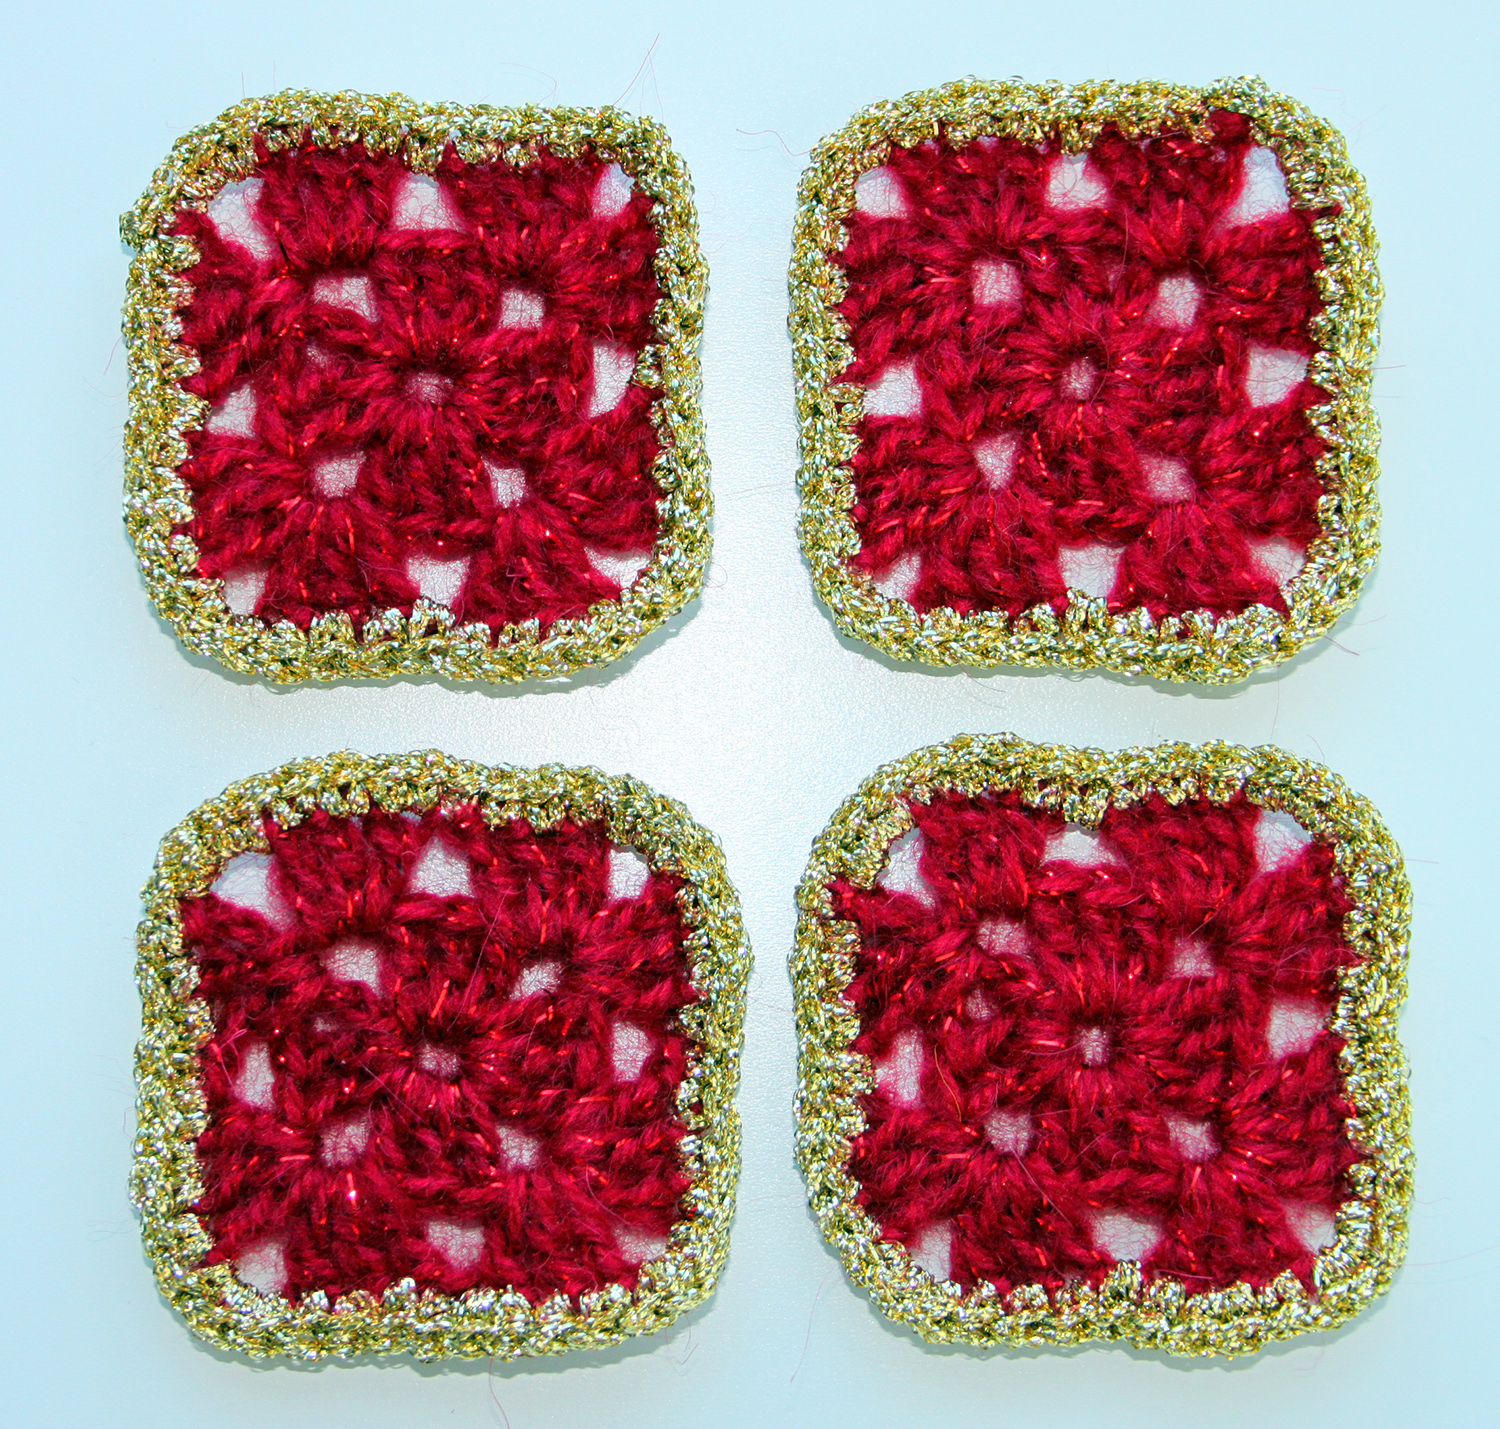 instructions-for-crocheting-granny-square-hristmastree-decoration